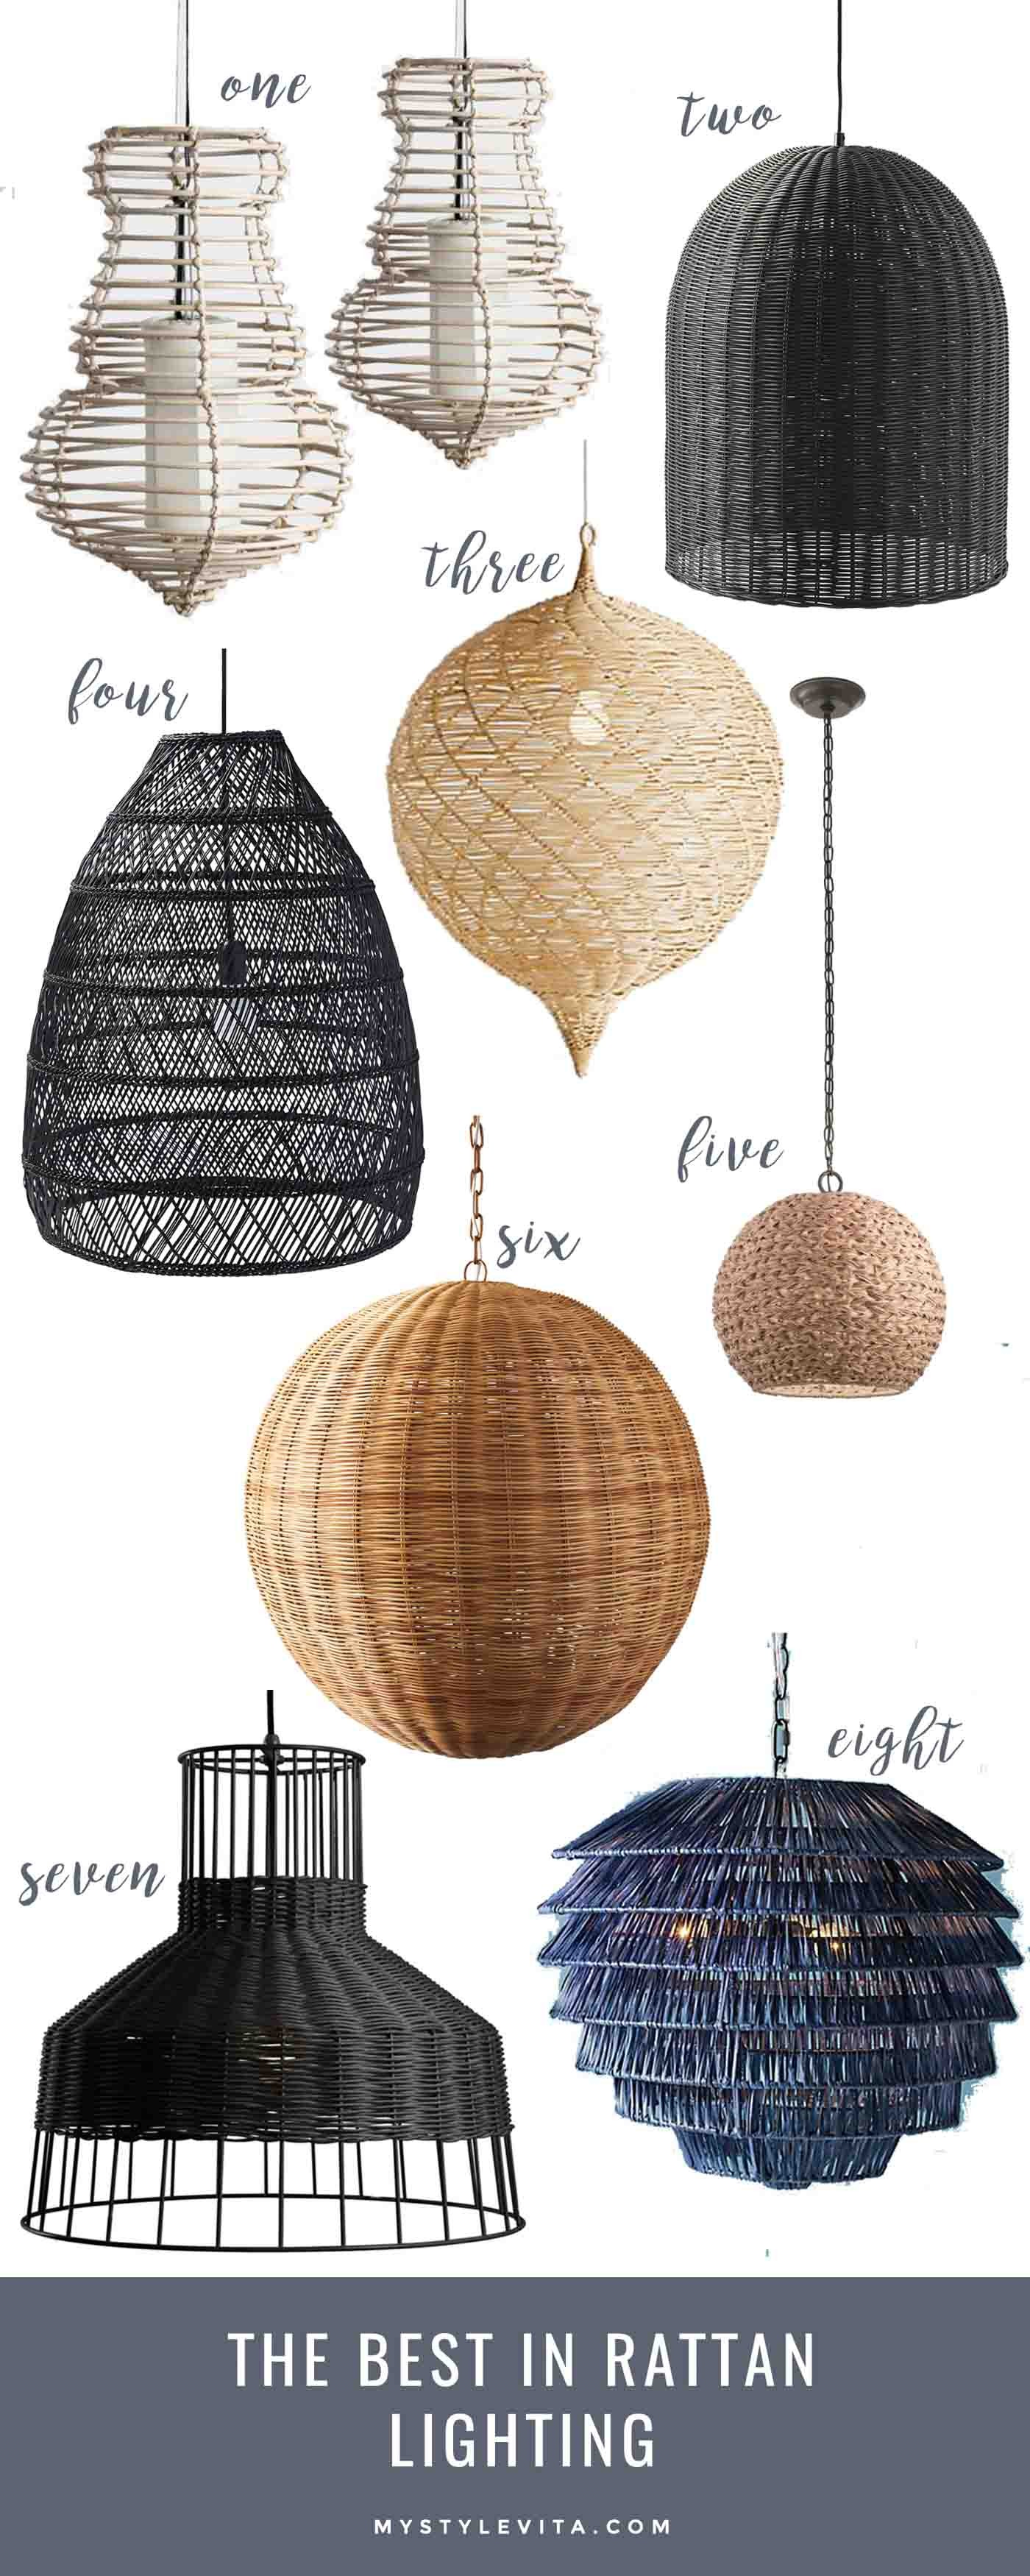 The Best In Rattan Lighting For Home My Style Vita